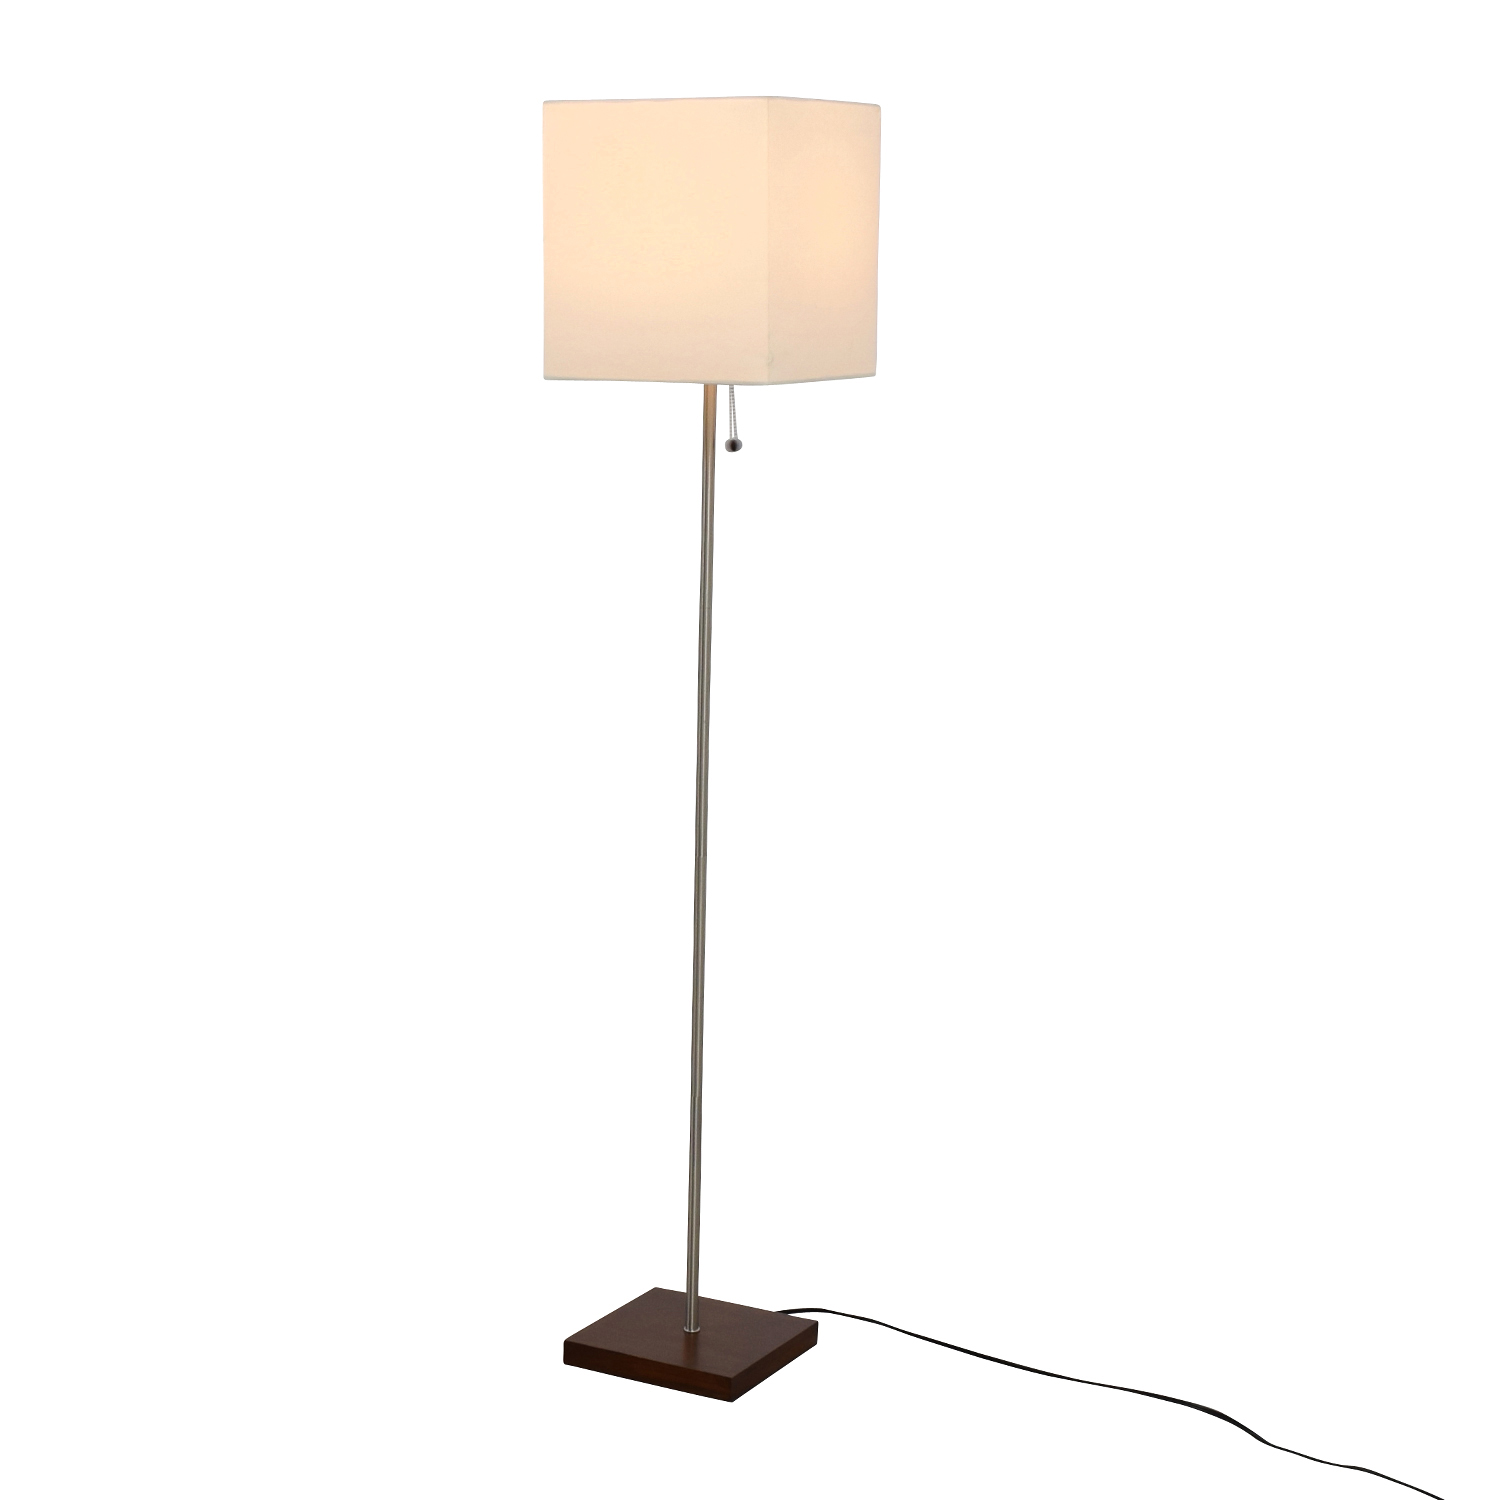 25 Off Target Target Classic Silver Floor Lamp Decor